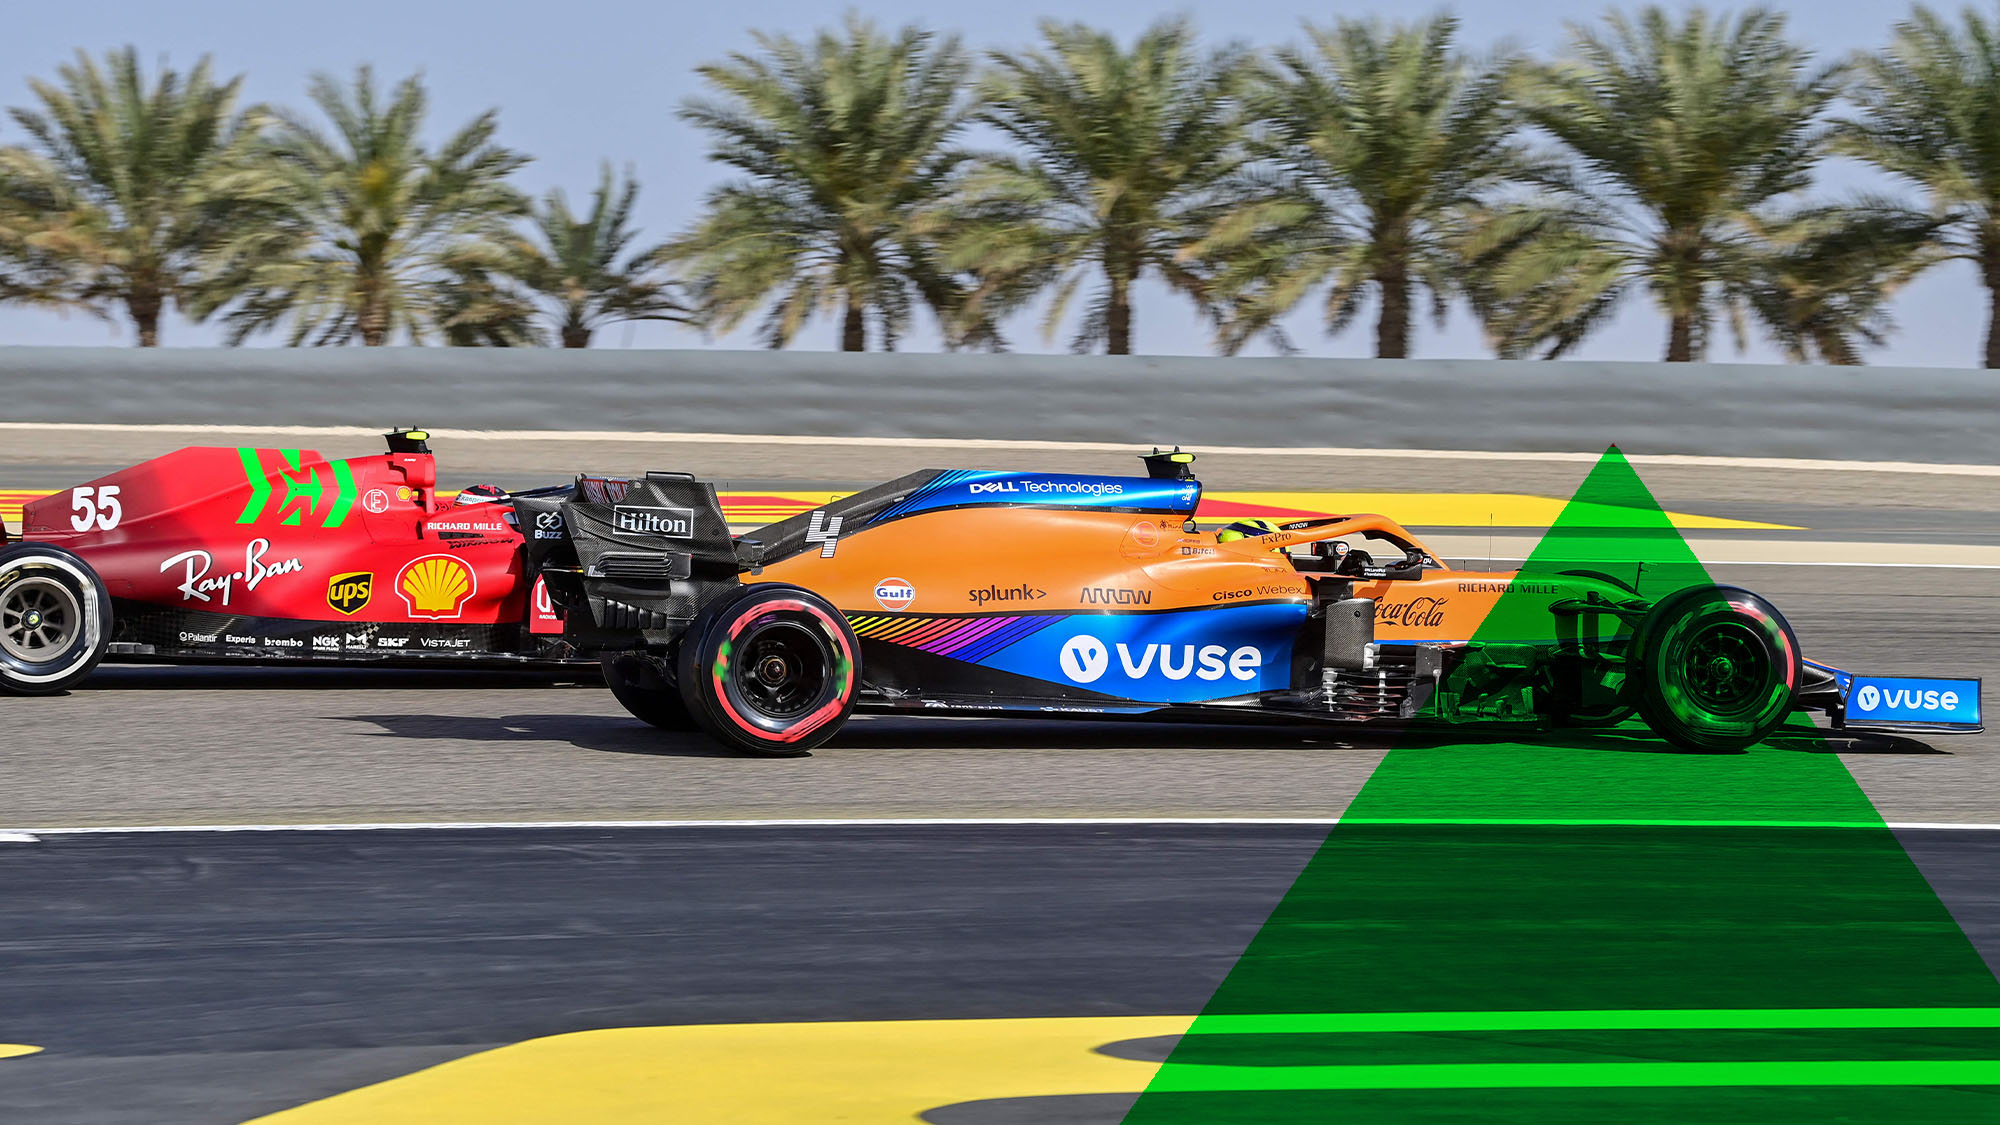 Ferrari's Spanish driver Carlos Sainz Jr (L) and McLaren's British driver Lando Norris vie for position during the third practice session ahead of the Bahrain Formula One Grand Prix at the Bahrain International Circuit in the city of Sakhir on March 27, 2021. (Photo by ANDREJ ISAKOVIC / AFP) (Photo by ANDREJ ISAKOVIC/AFP via Getty Images)